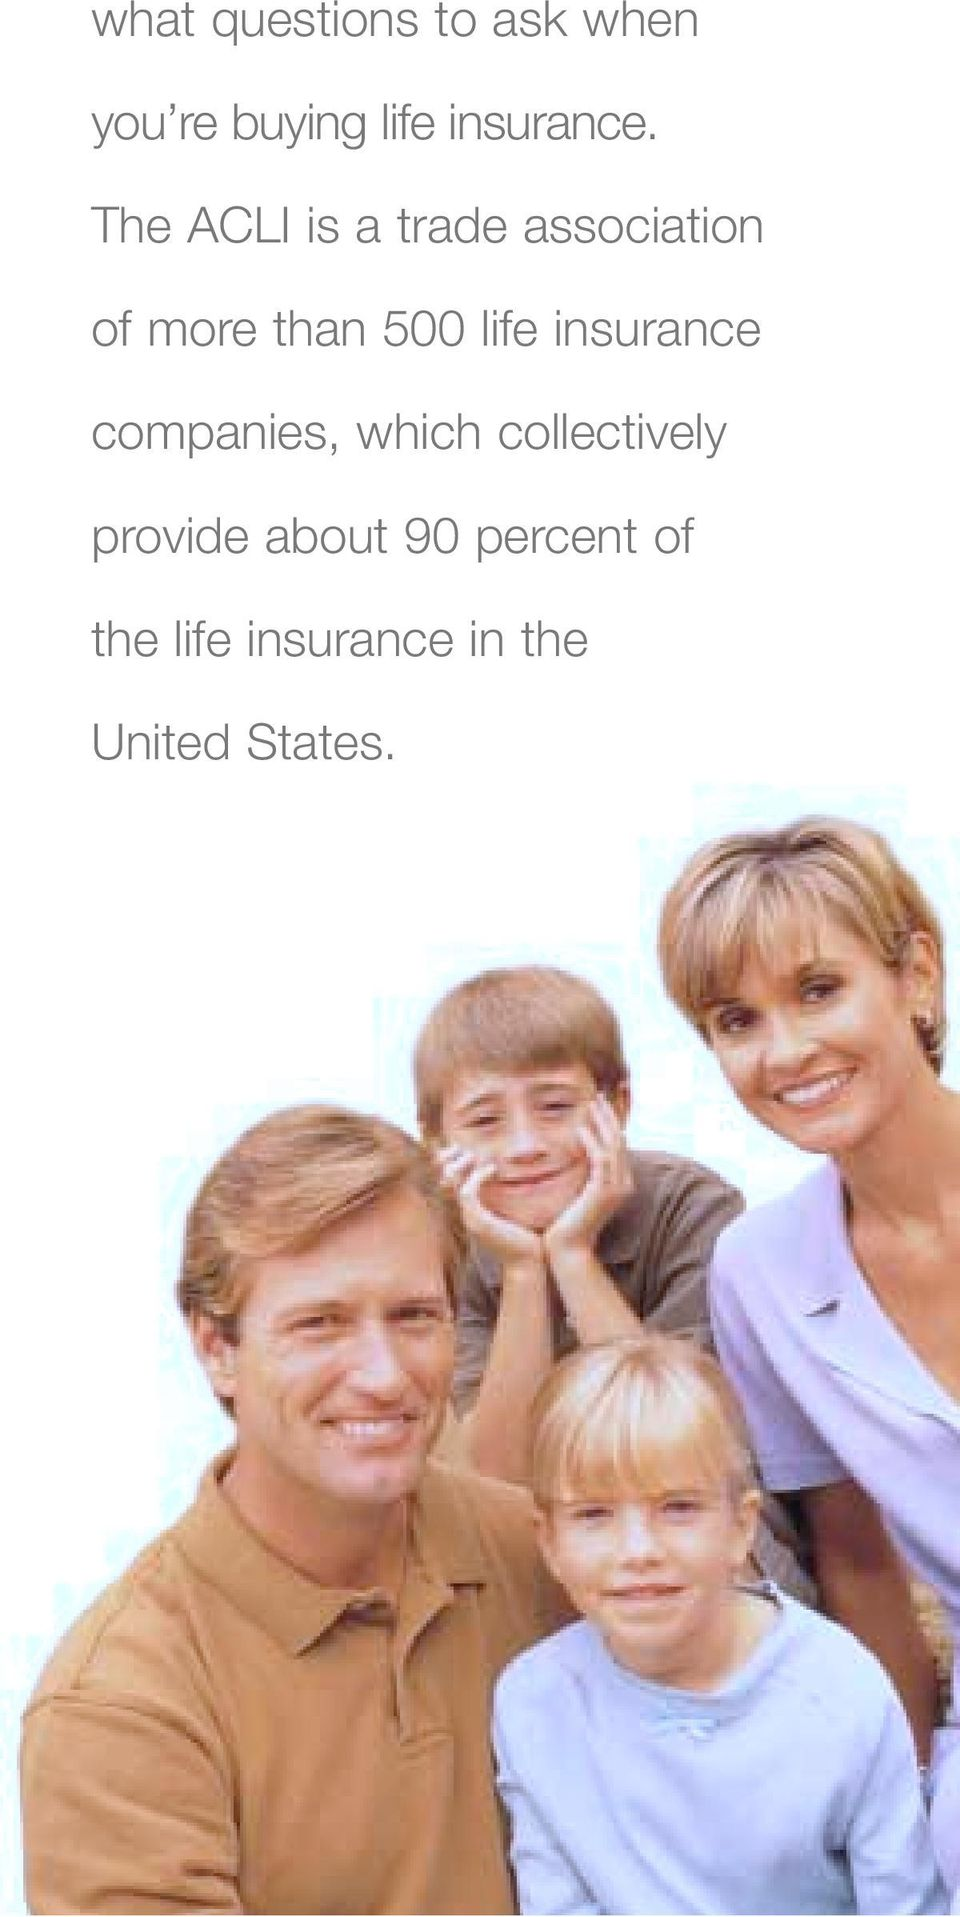 The ACLI is a trade association of more than 500 life